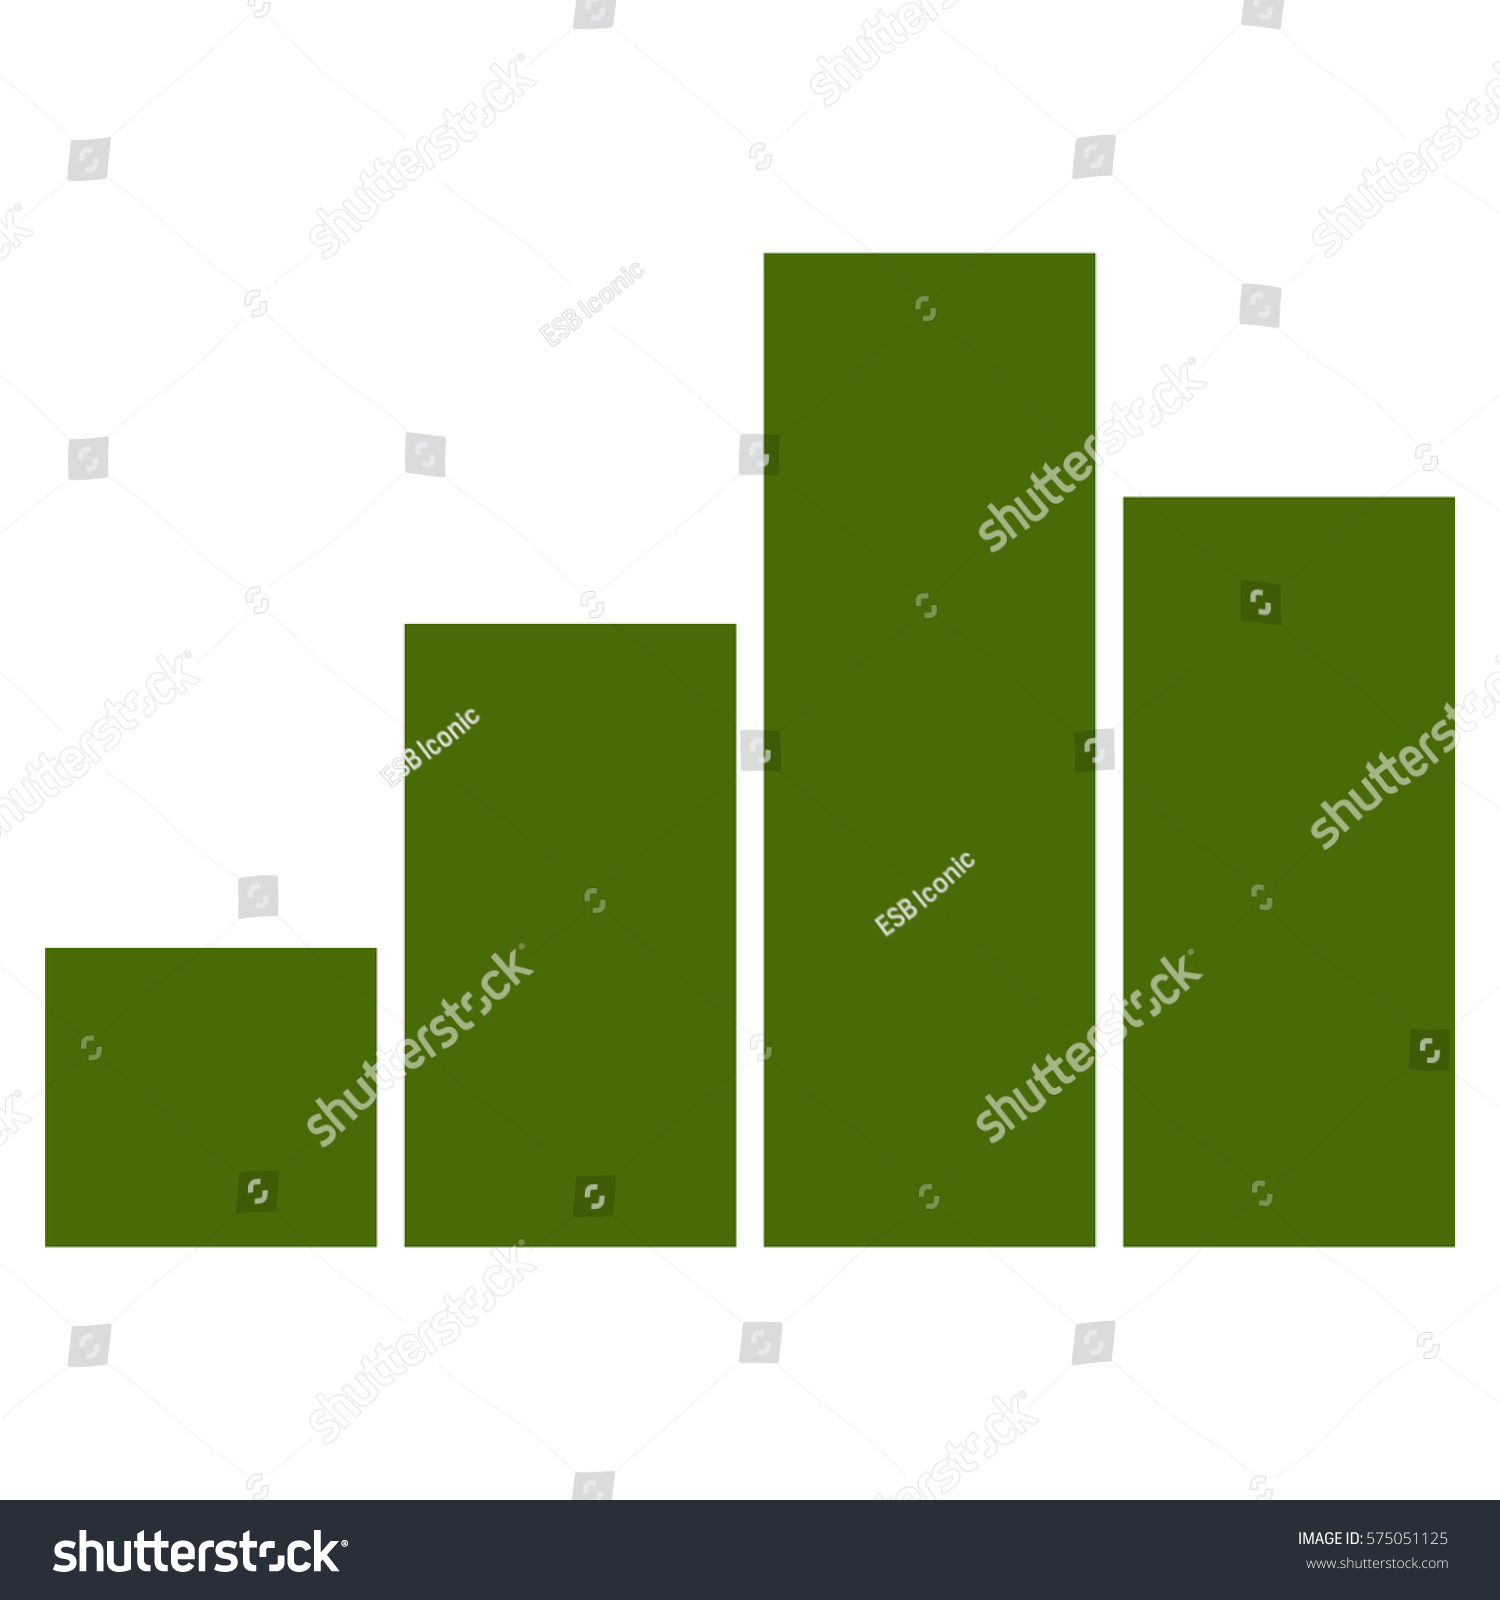 stock vector vector illustration of bar chart in green icon 575051125 swot icon wiring diagrams wiring diagrams flat design letters for th8320r1003 wiring diagrams at highcare.asia